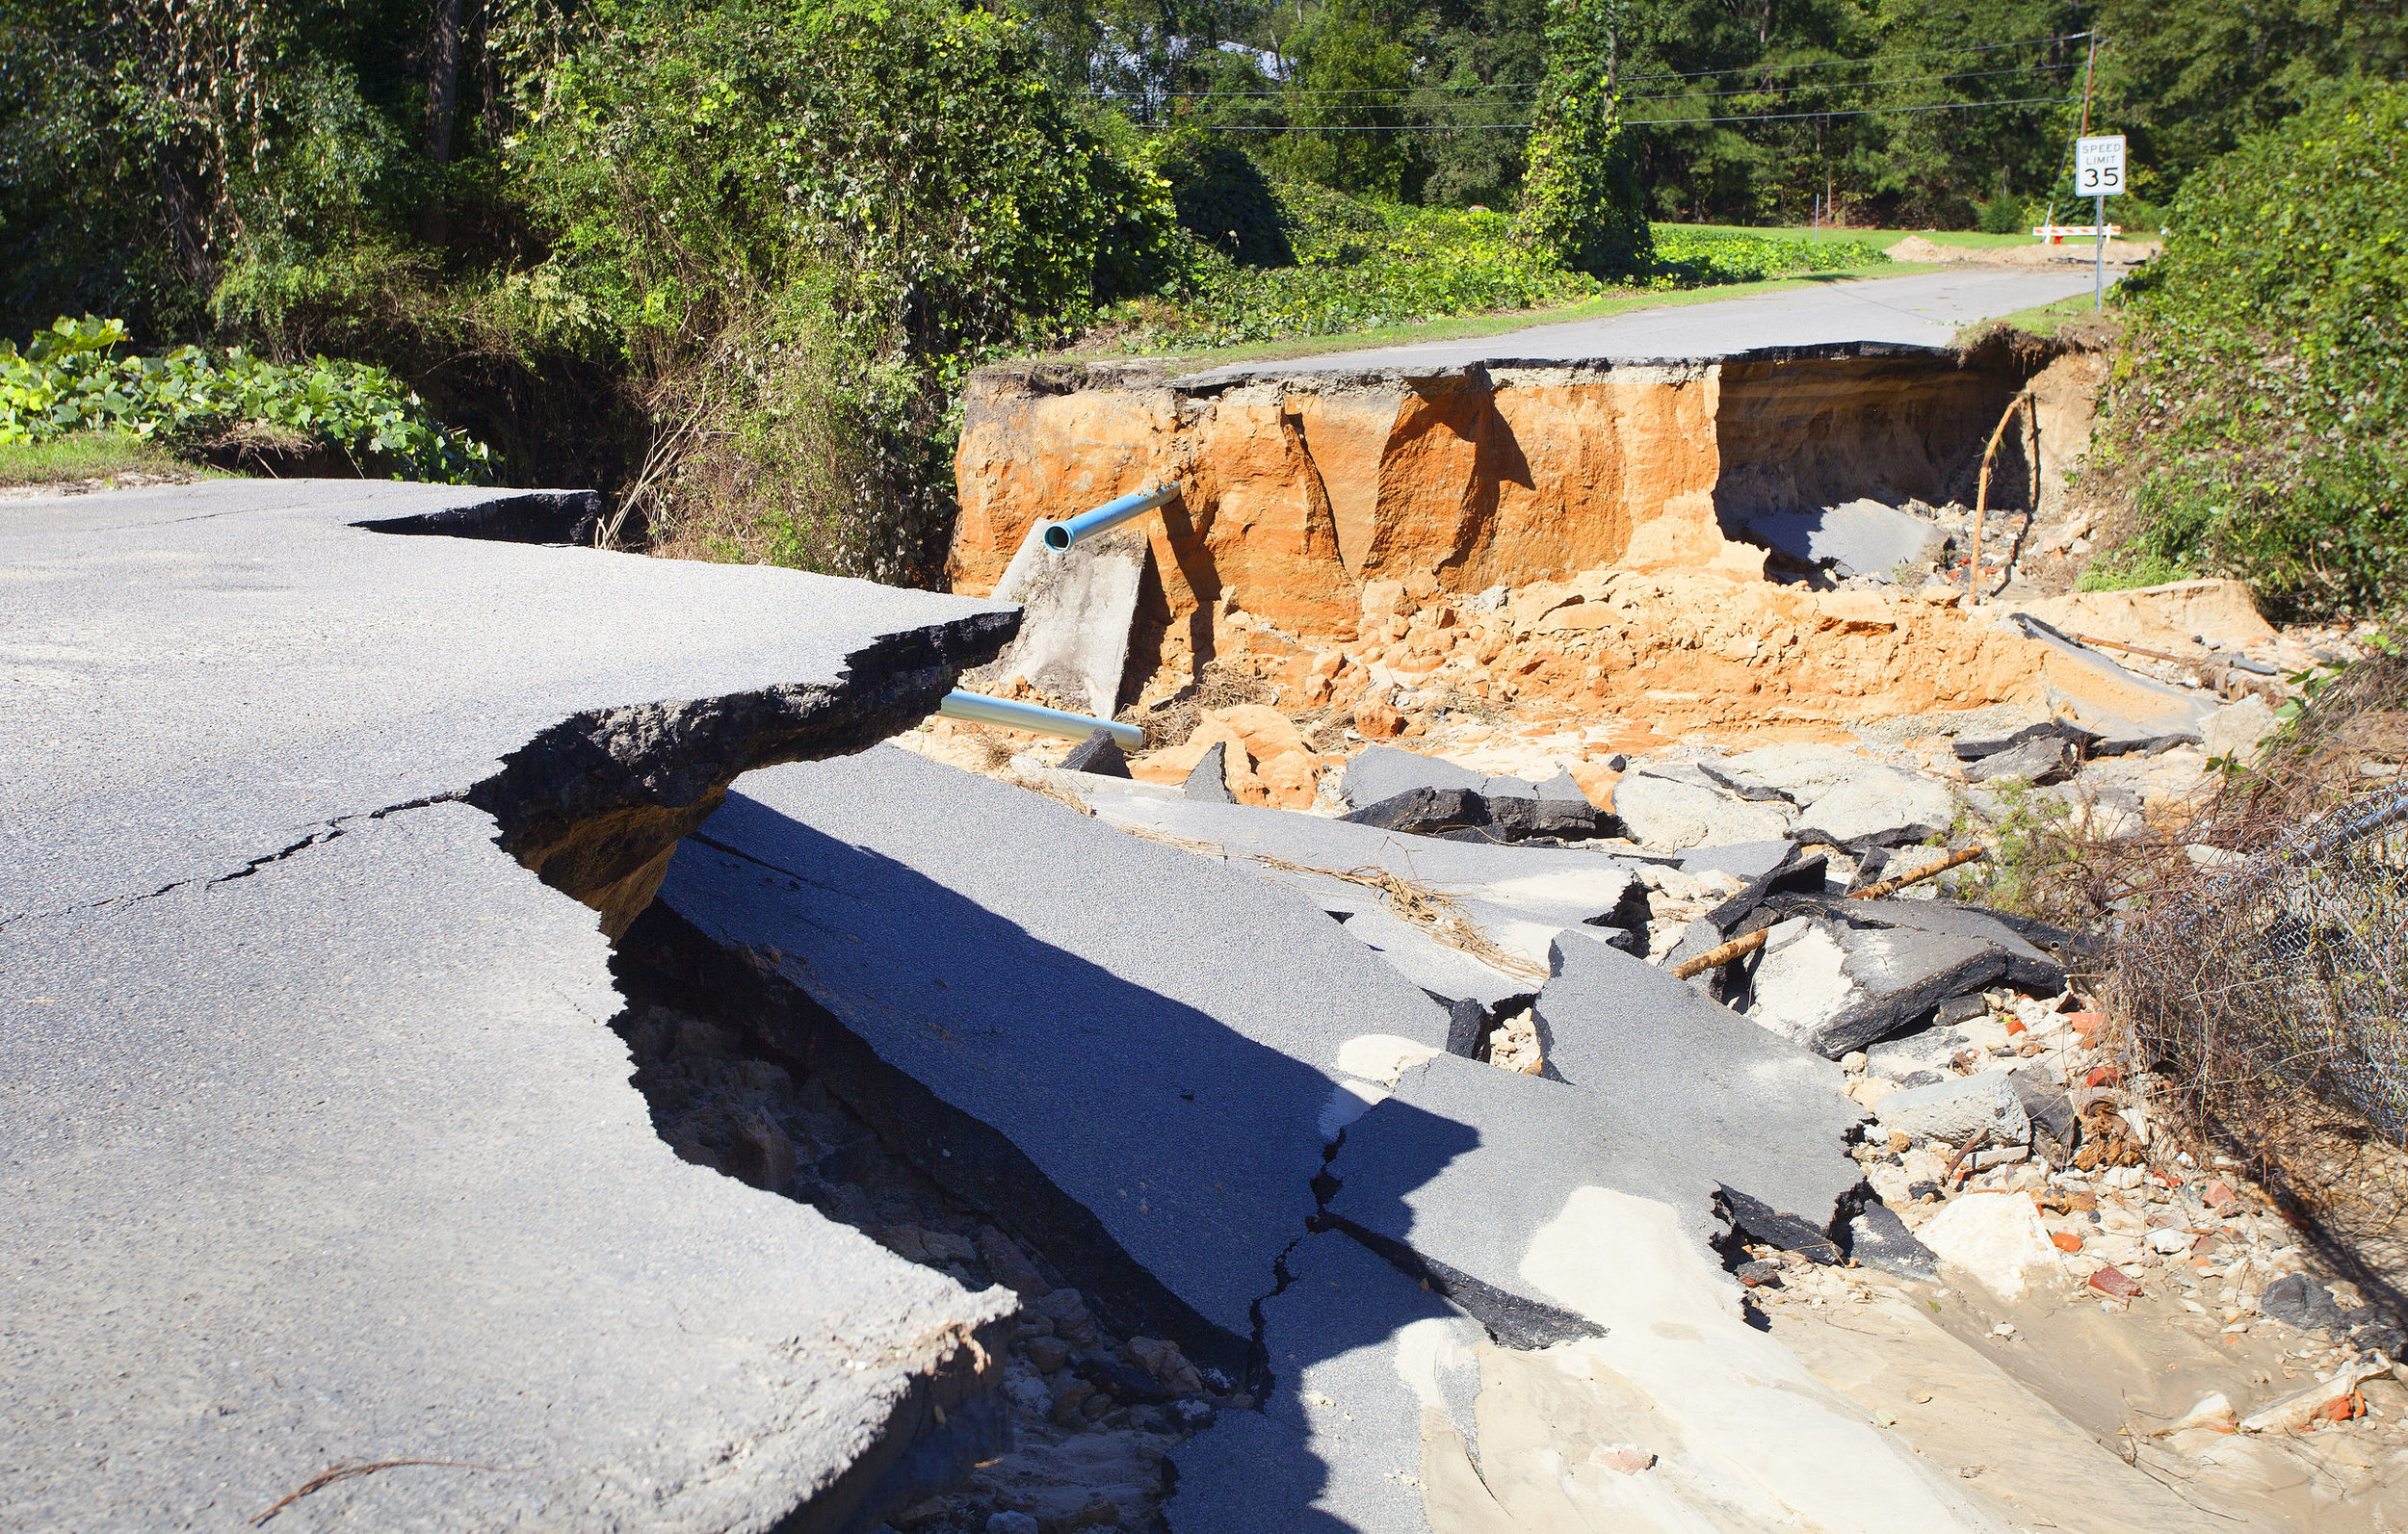 Flood damage caused by Hurricane Matthew in 2016, near Raeford, North Carolina, in 2016.